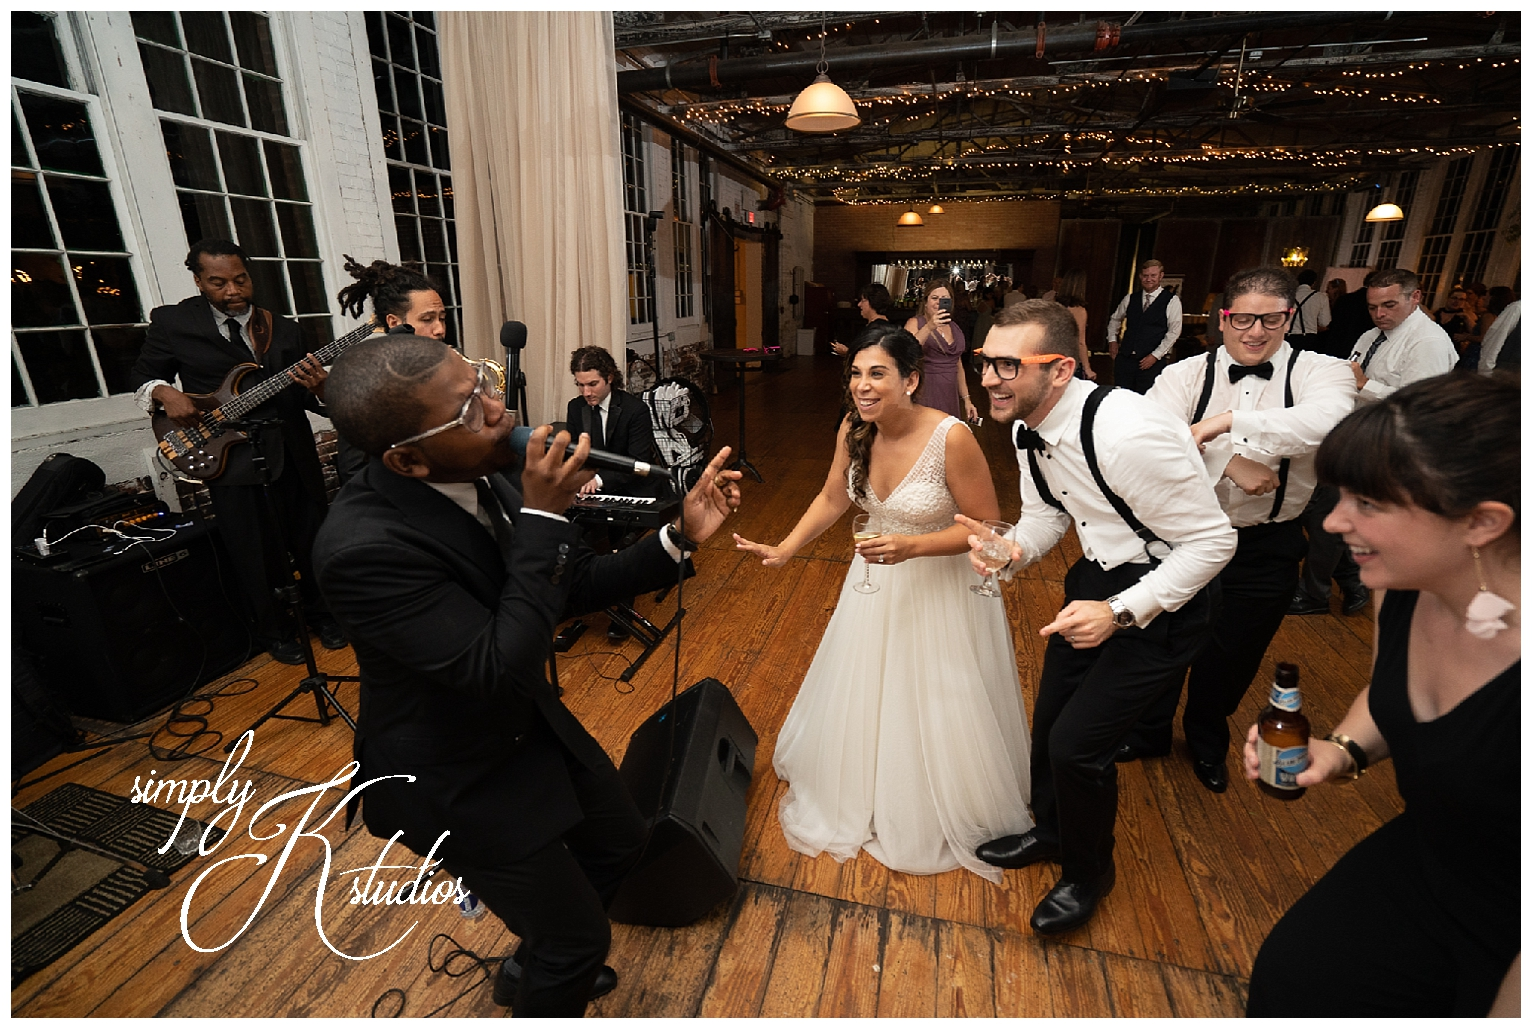 The Lace Factory Dancing Photos.jpg